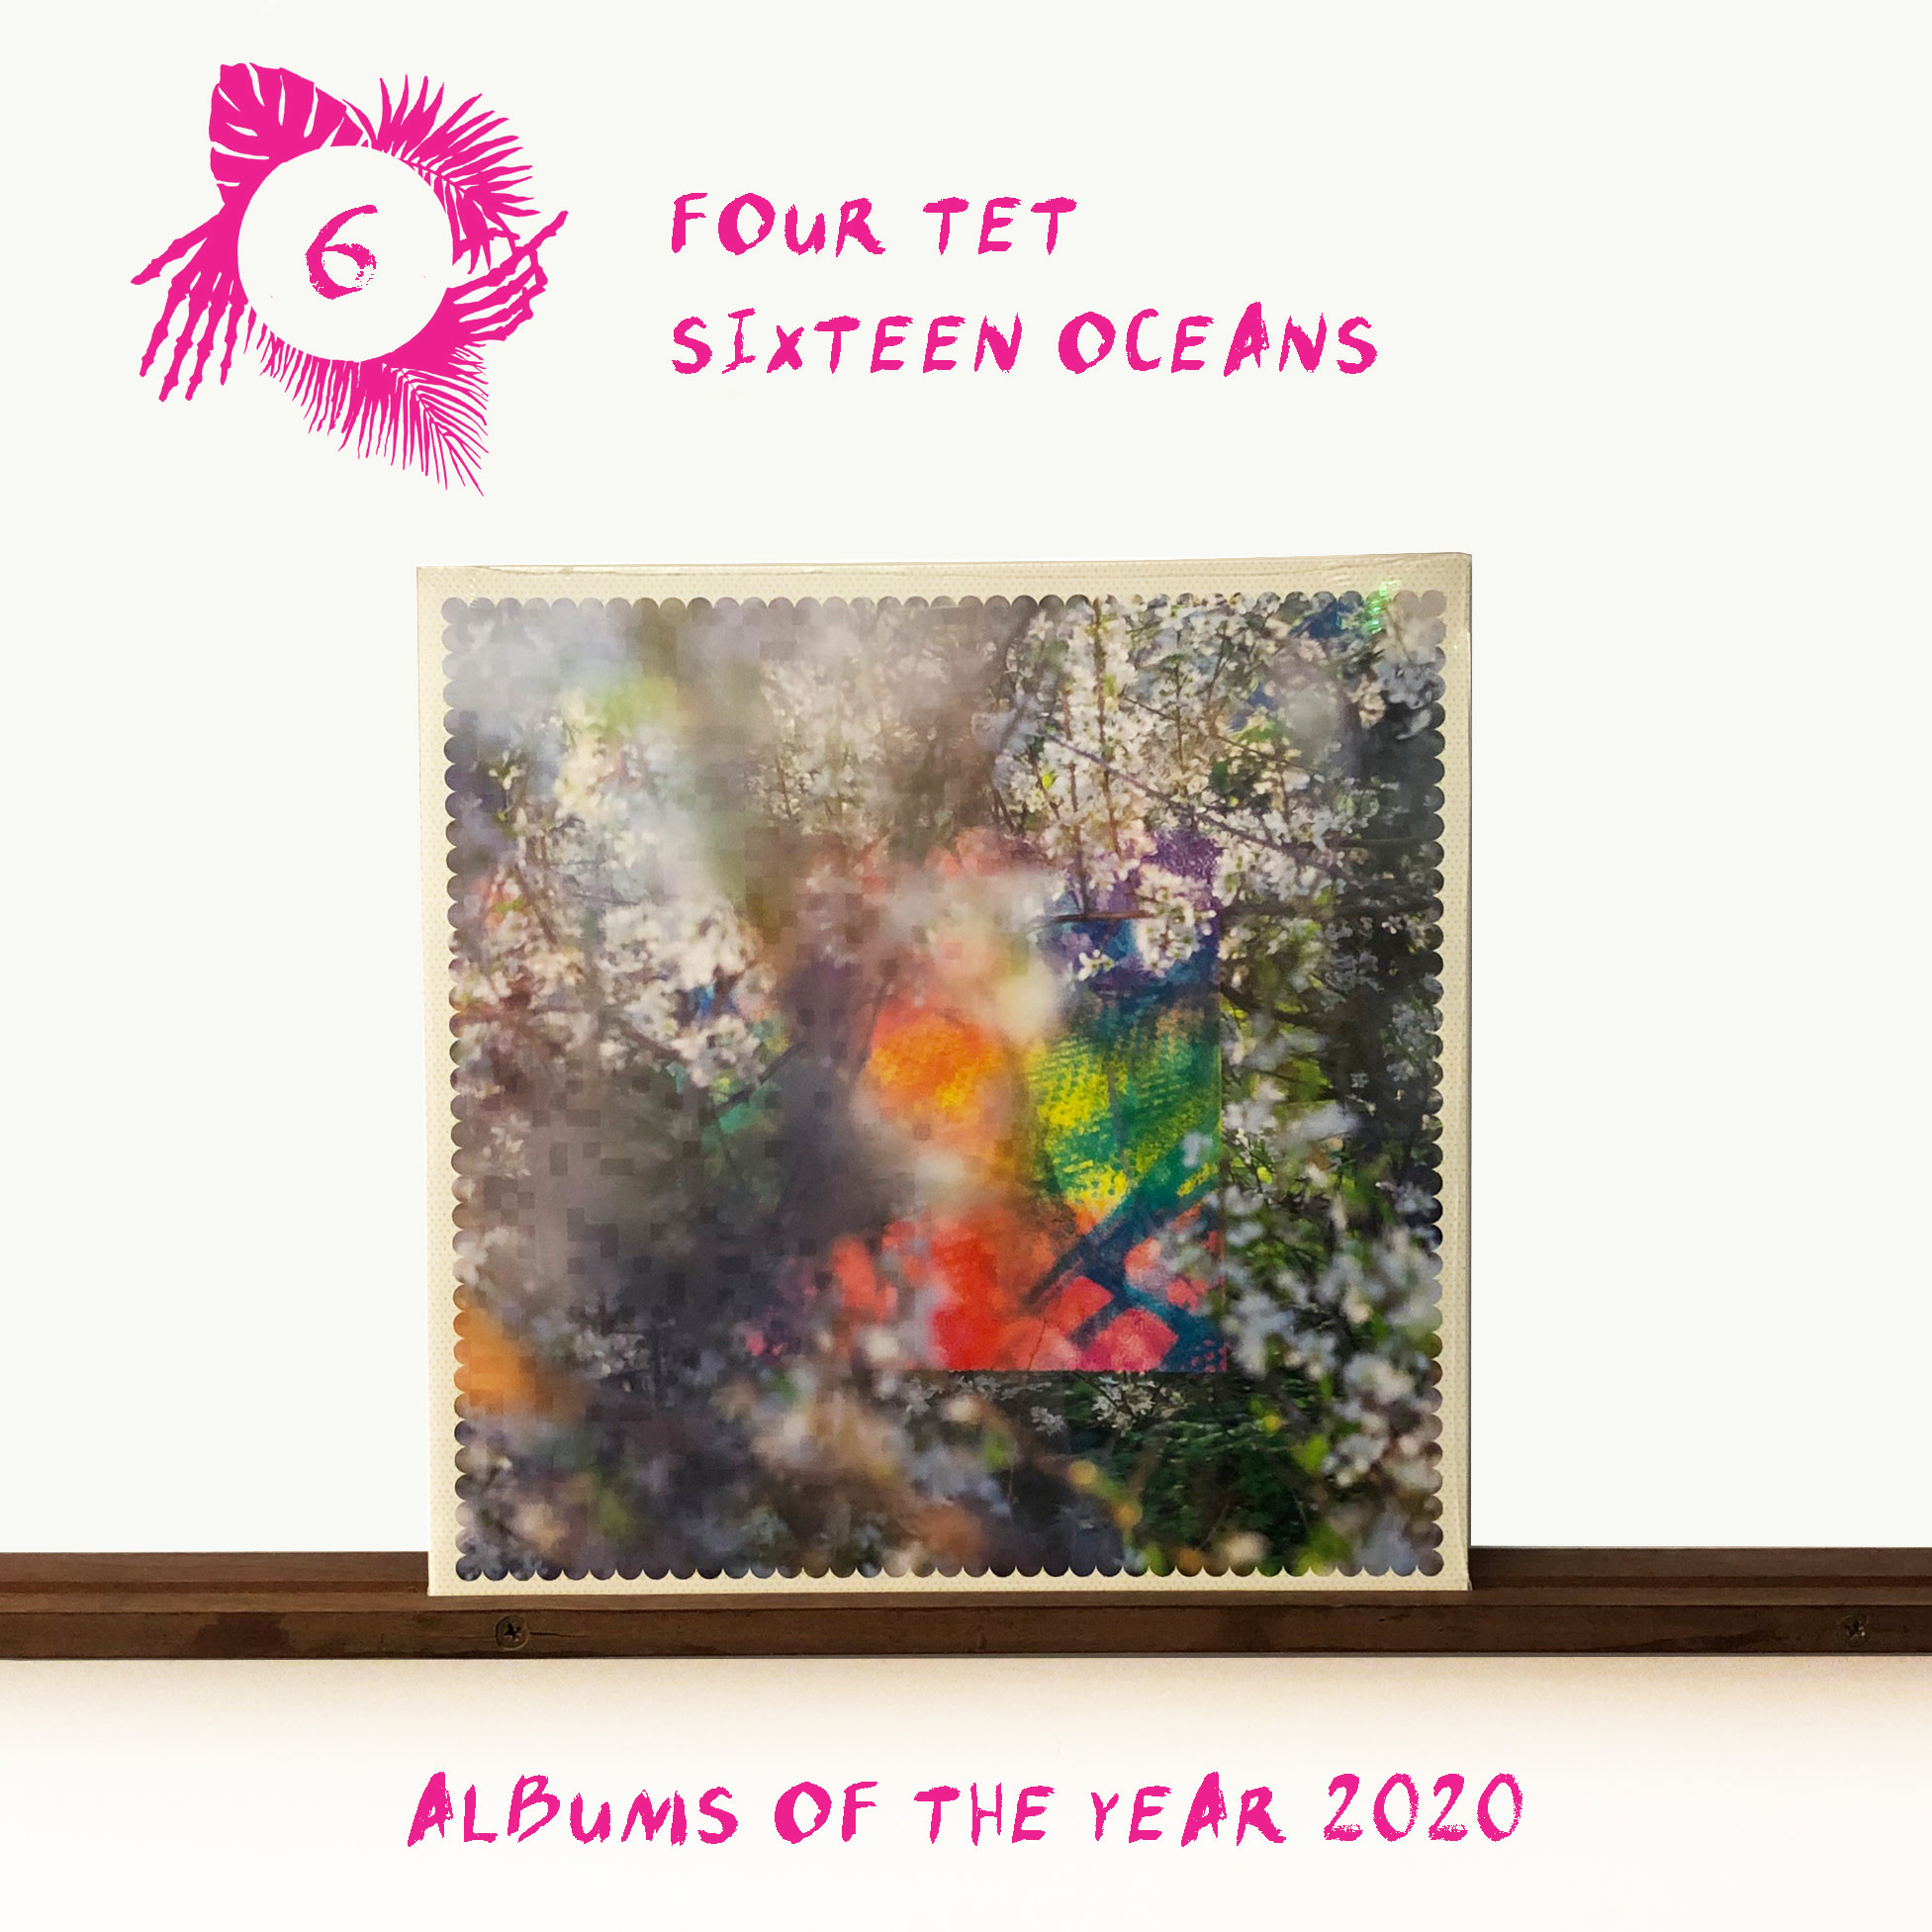 Text Four Tet - Sixteen Oceans (Love Record Stores Version)